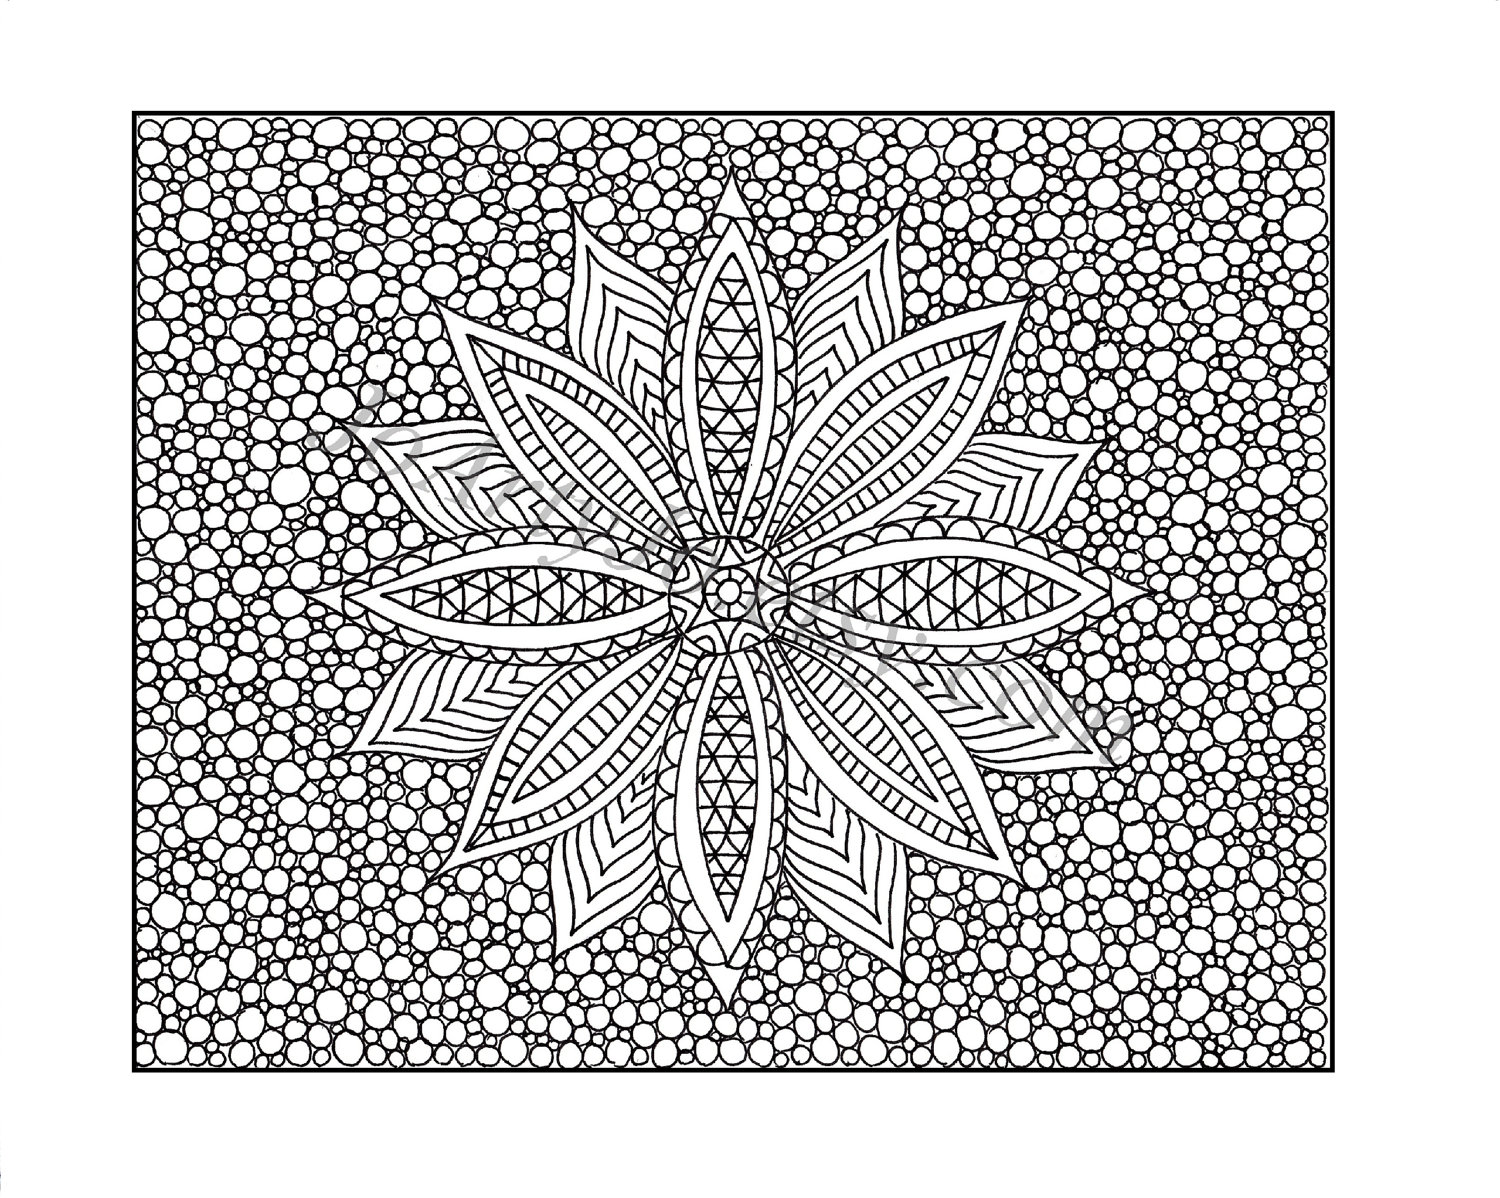 Free printable coloring pages for adults only free printable coloring pages for adults only 12 - Zentangle Coloring Pages_304008 Share This Facebook Twitter Google Pinterest Linkedin Next Free Adult Coloring Pages